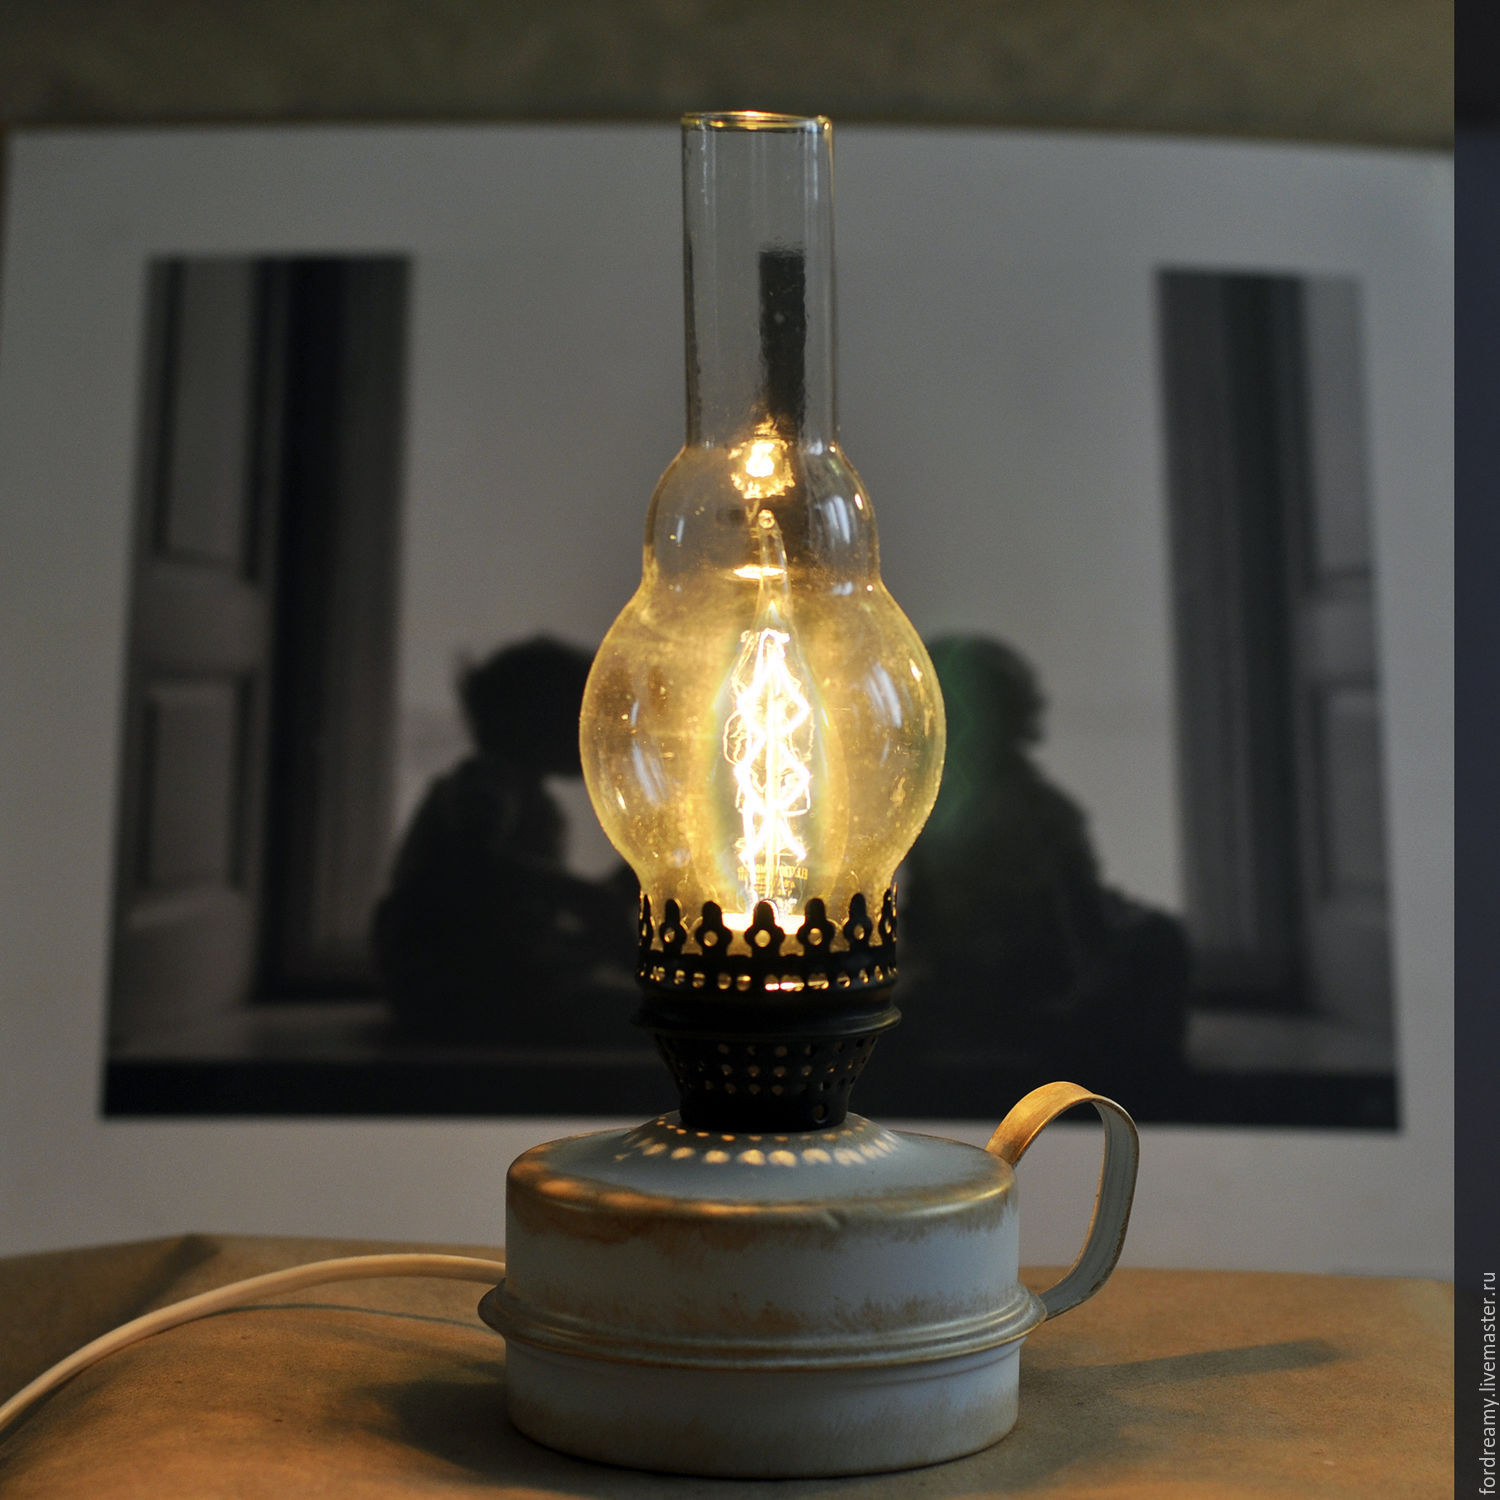 The oil lantern table lamp electric gift on march 8 shop online a gift to his beloved wife girl woman table electric oil lamp with mozeypictures Image collections